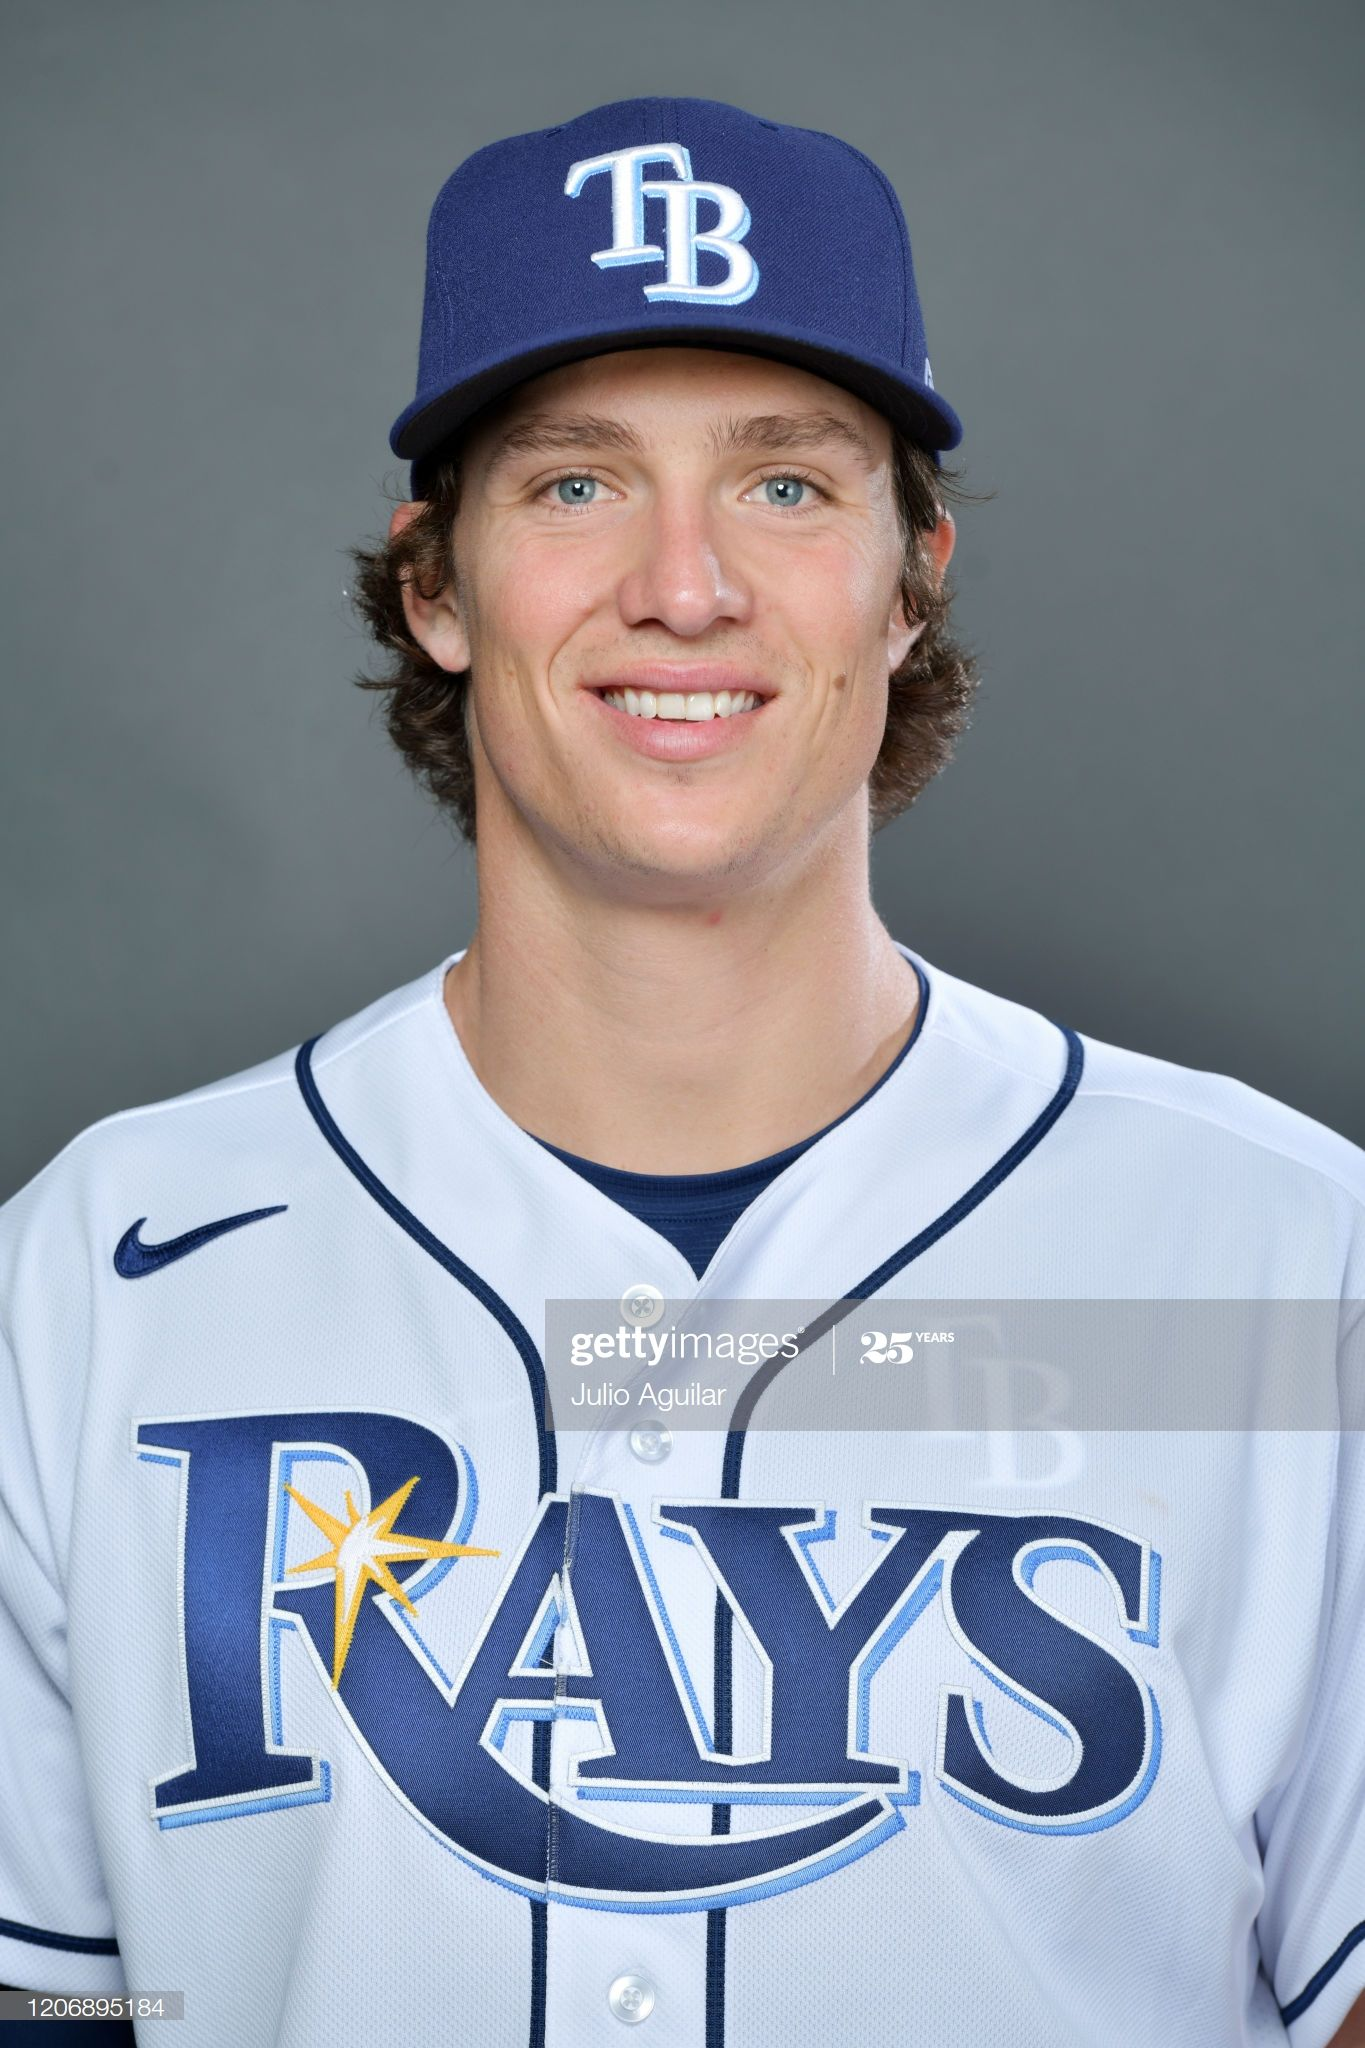 Tyler Glasnow Of The Tampa Bay Rays Poses For Picture Day On February In 2020 Tampa Bay Rays Tampa Bay Tampa